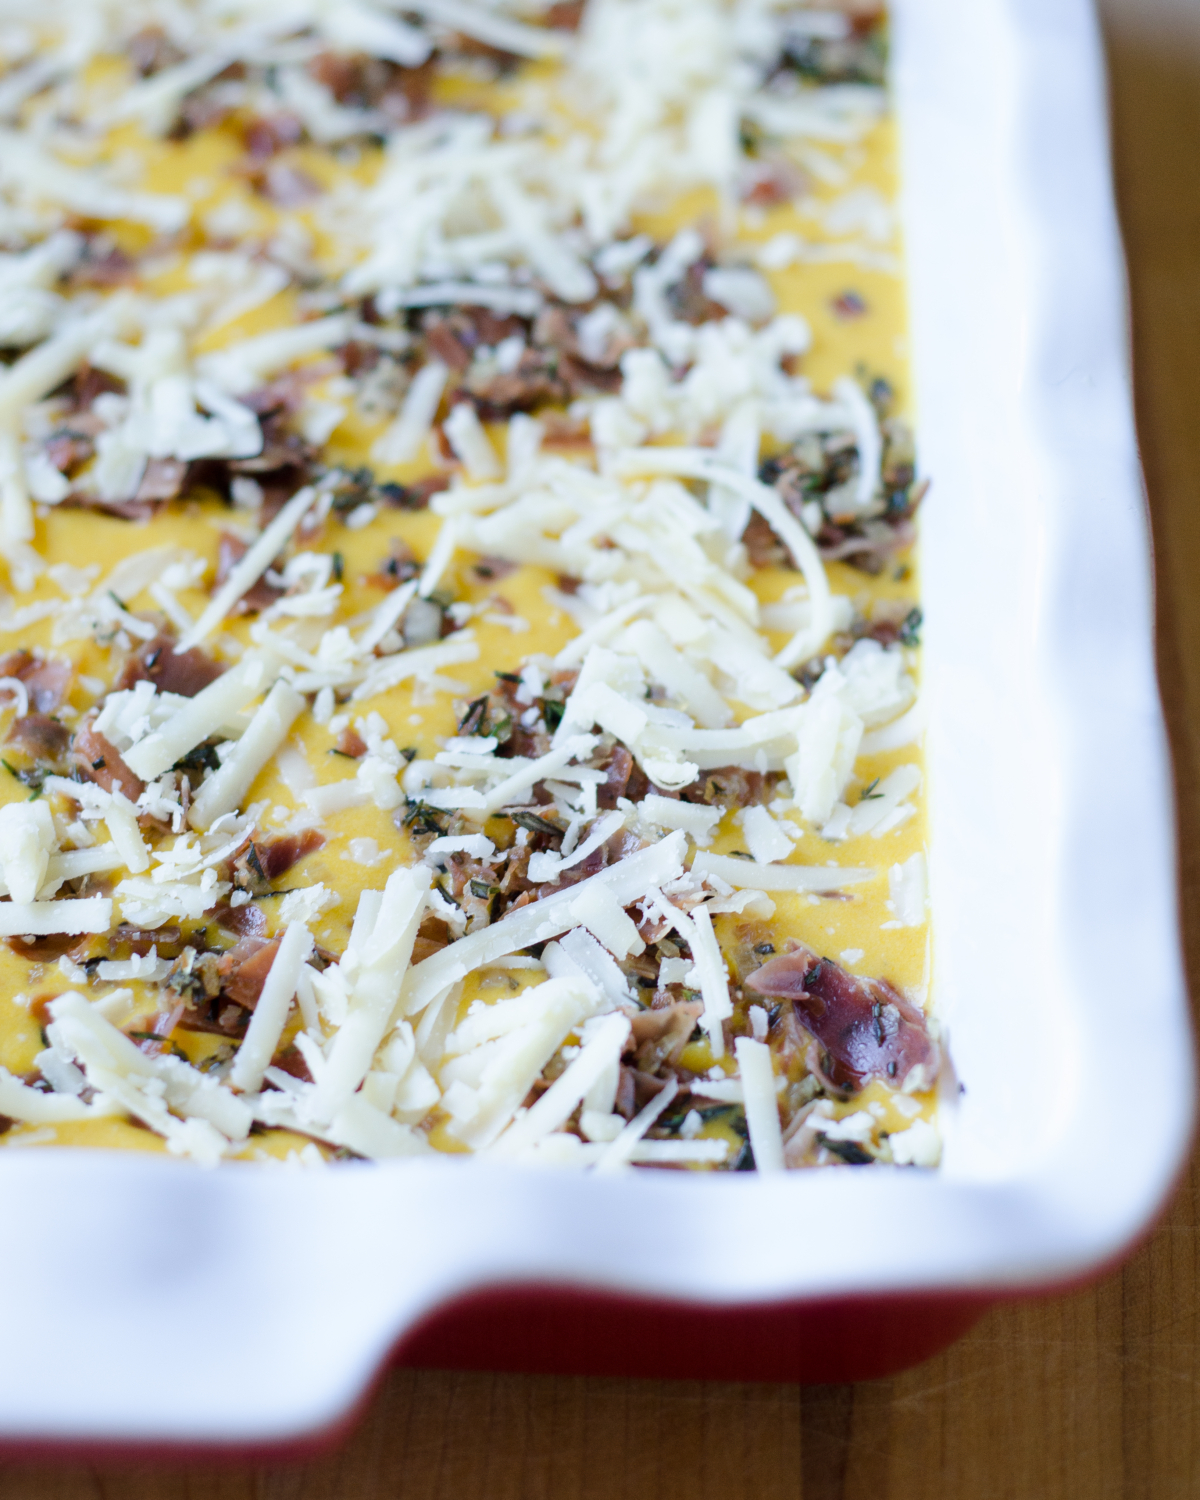 Savory pumpkin lasagna recipe featuring easy canned pumpkin, prosciutto, Gruyere cheese, rosemary, and thyme. Great make ahead recipe for a crowd but easy enough for a weeknight.